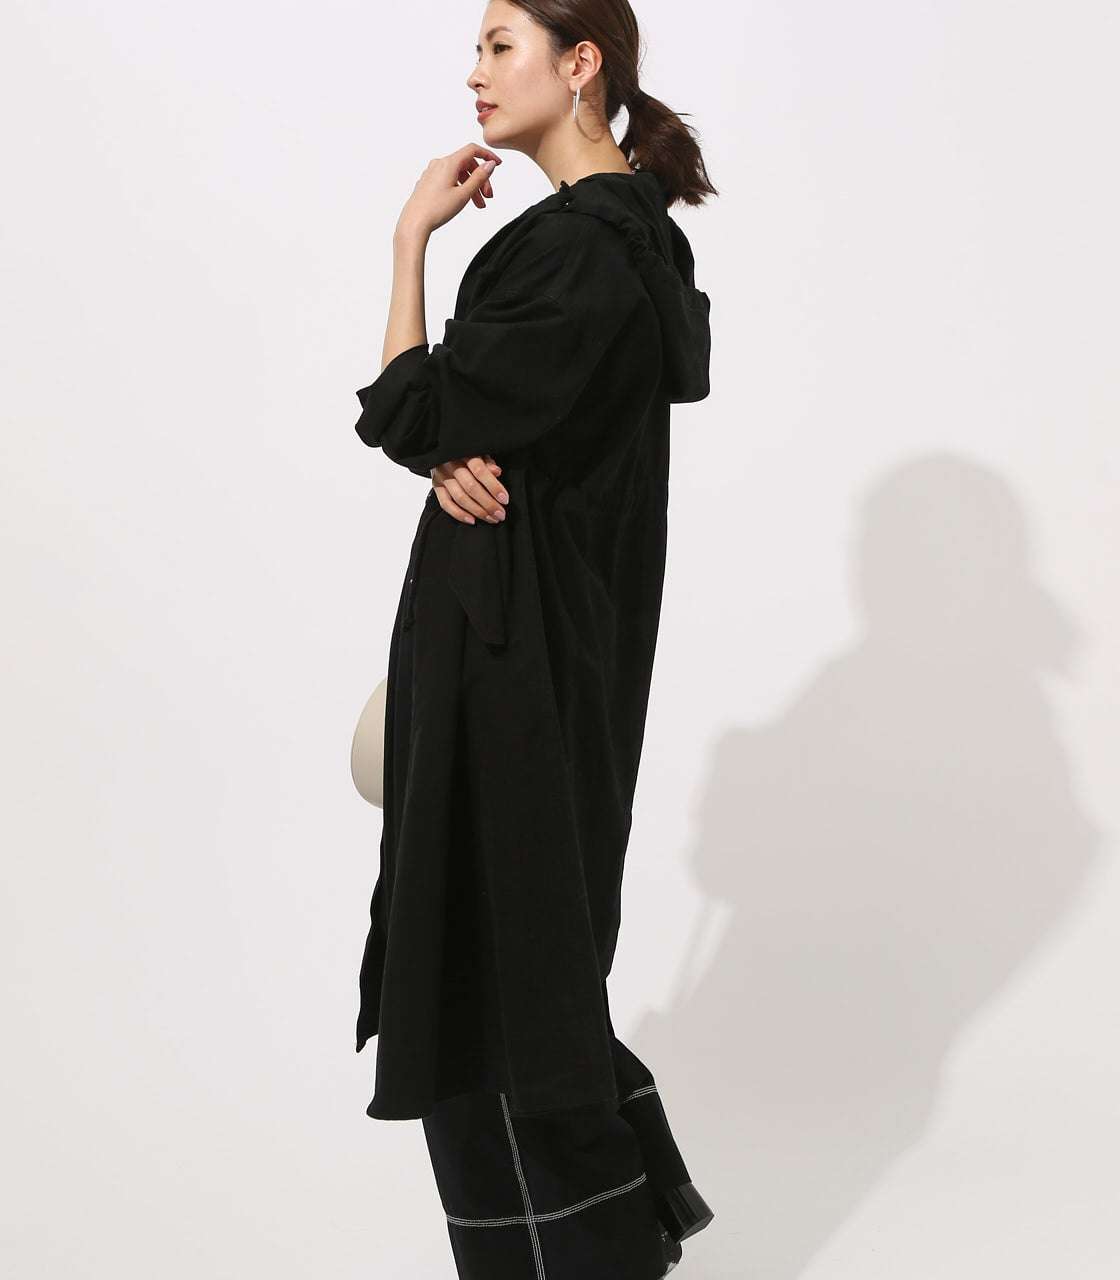 【AZUL BY MOUSSY】LOOSE MODS COAT 【MOOK49掲載 90044】 詳細画像 BLK 4